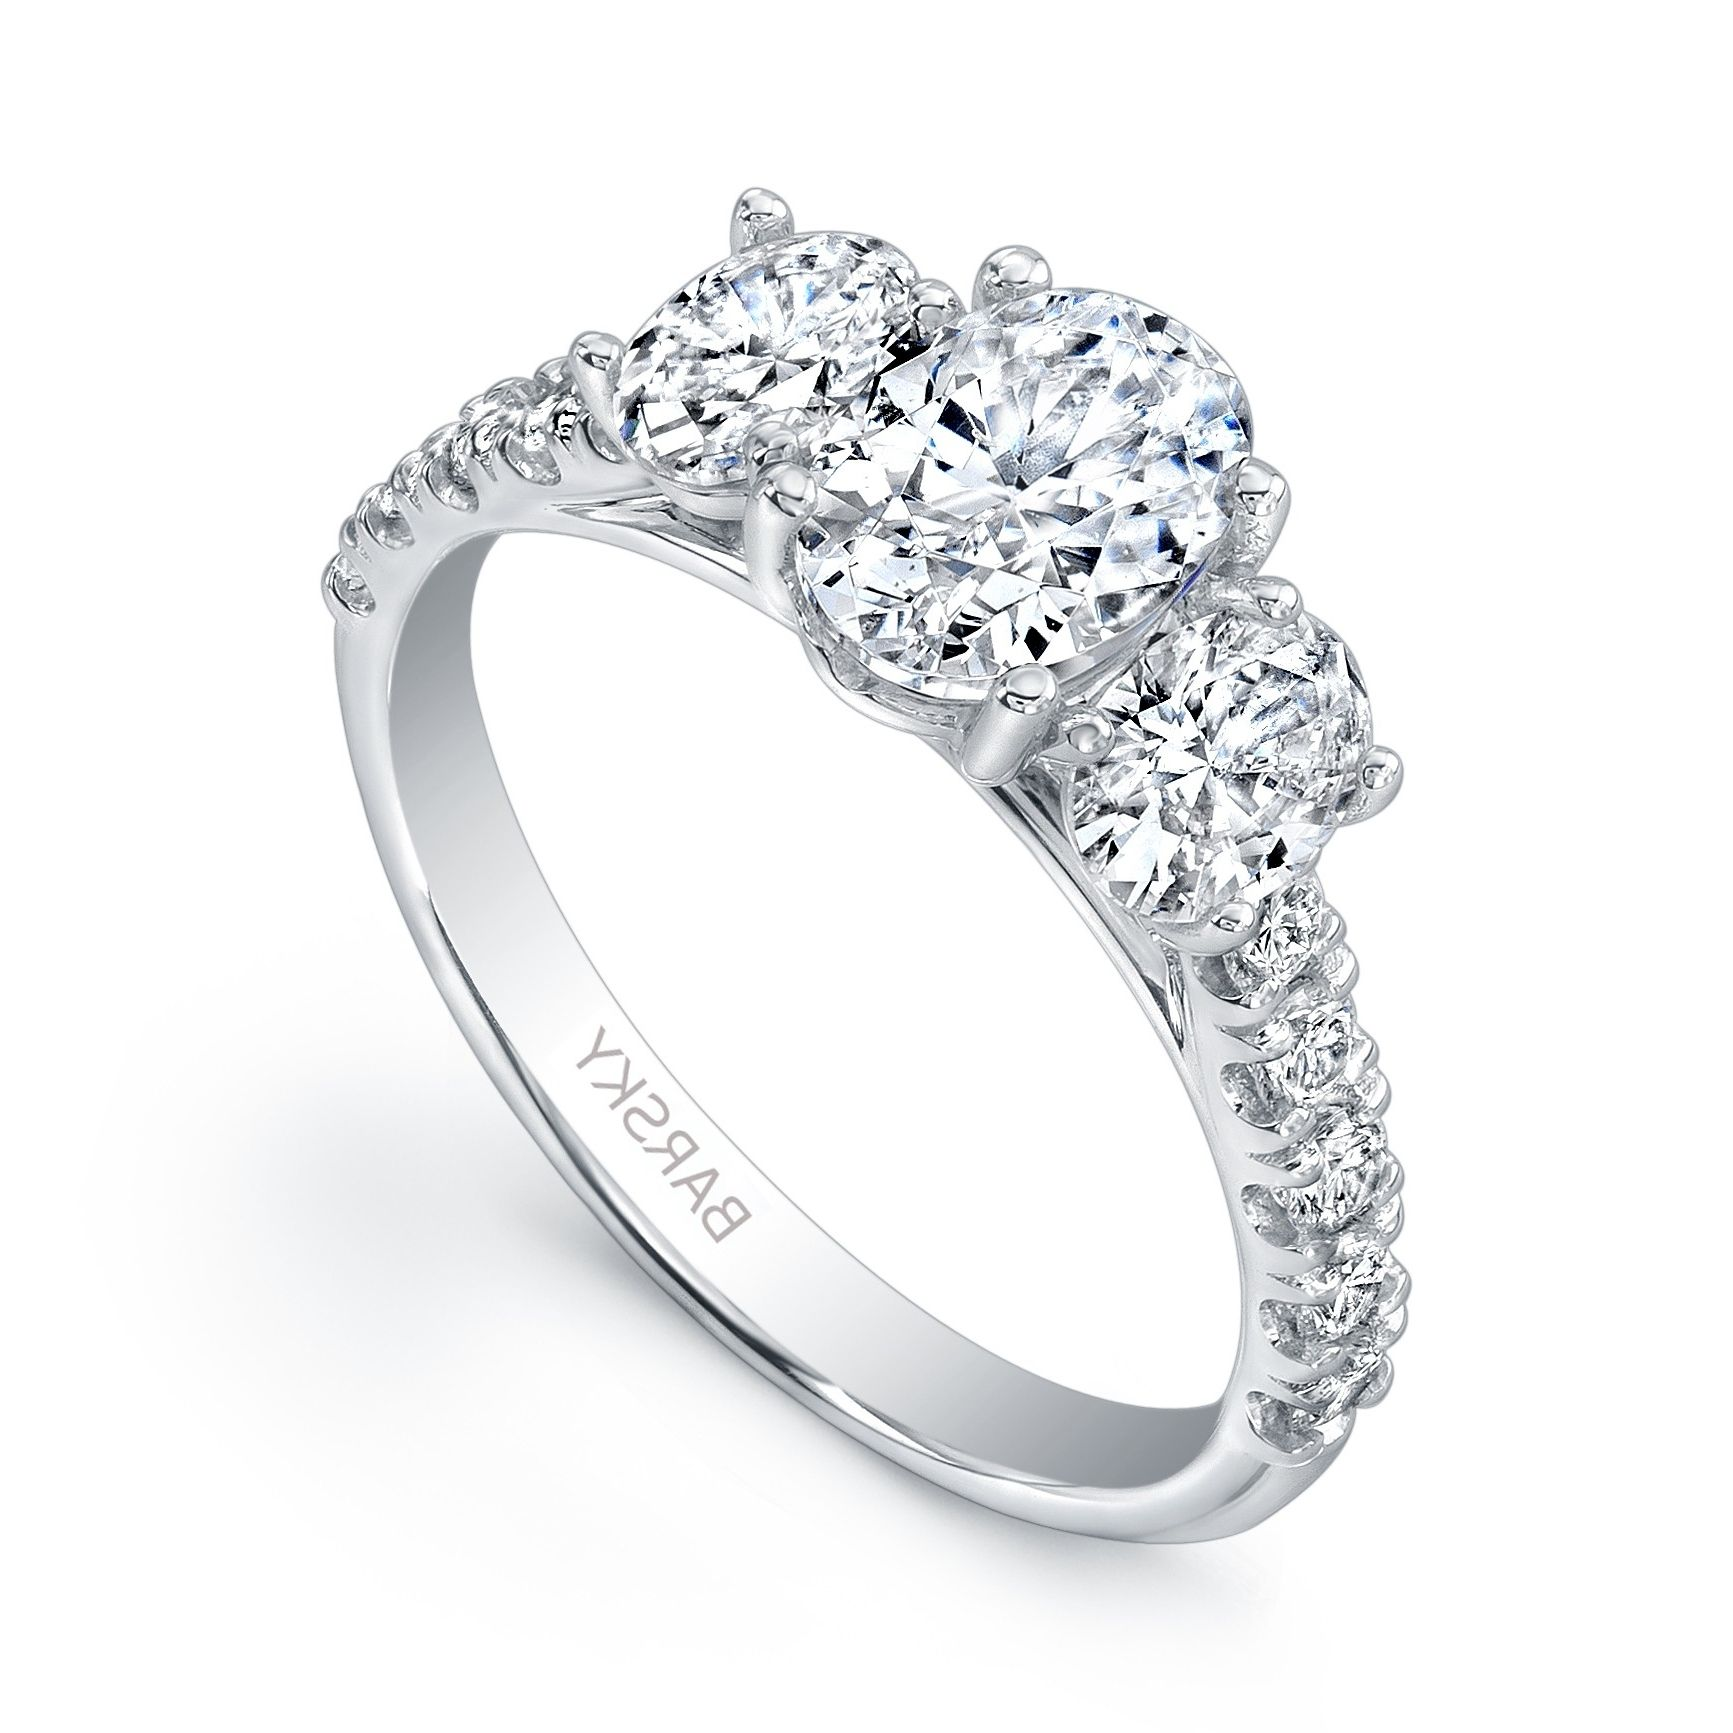 setting flush myshoplah settings jewellery petite diamond together shopping pave engagement styles ring